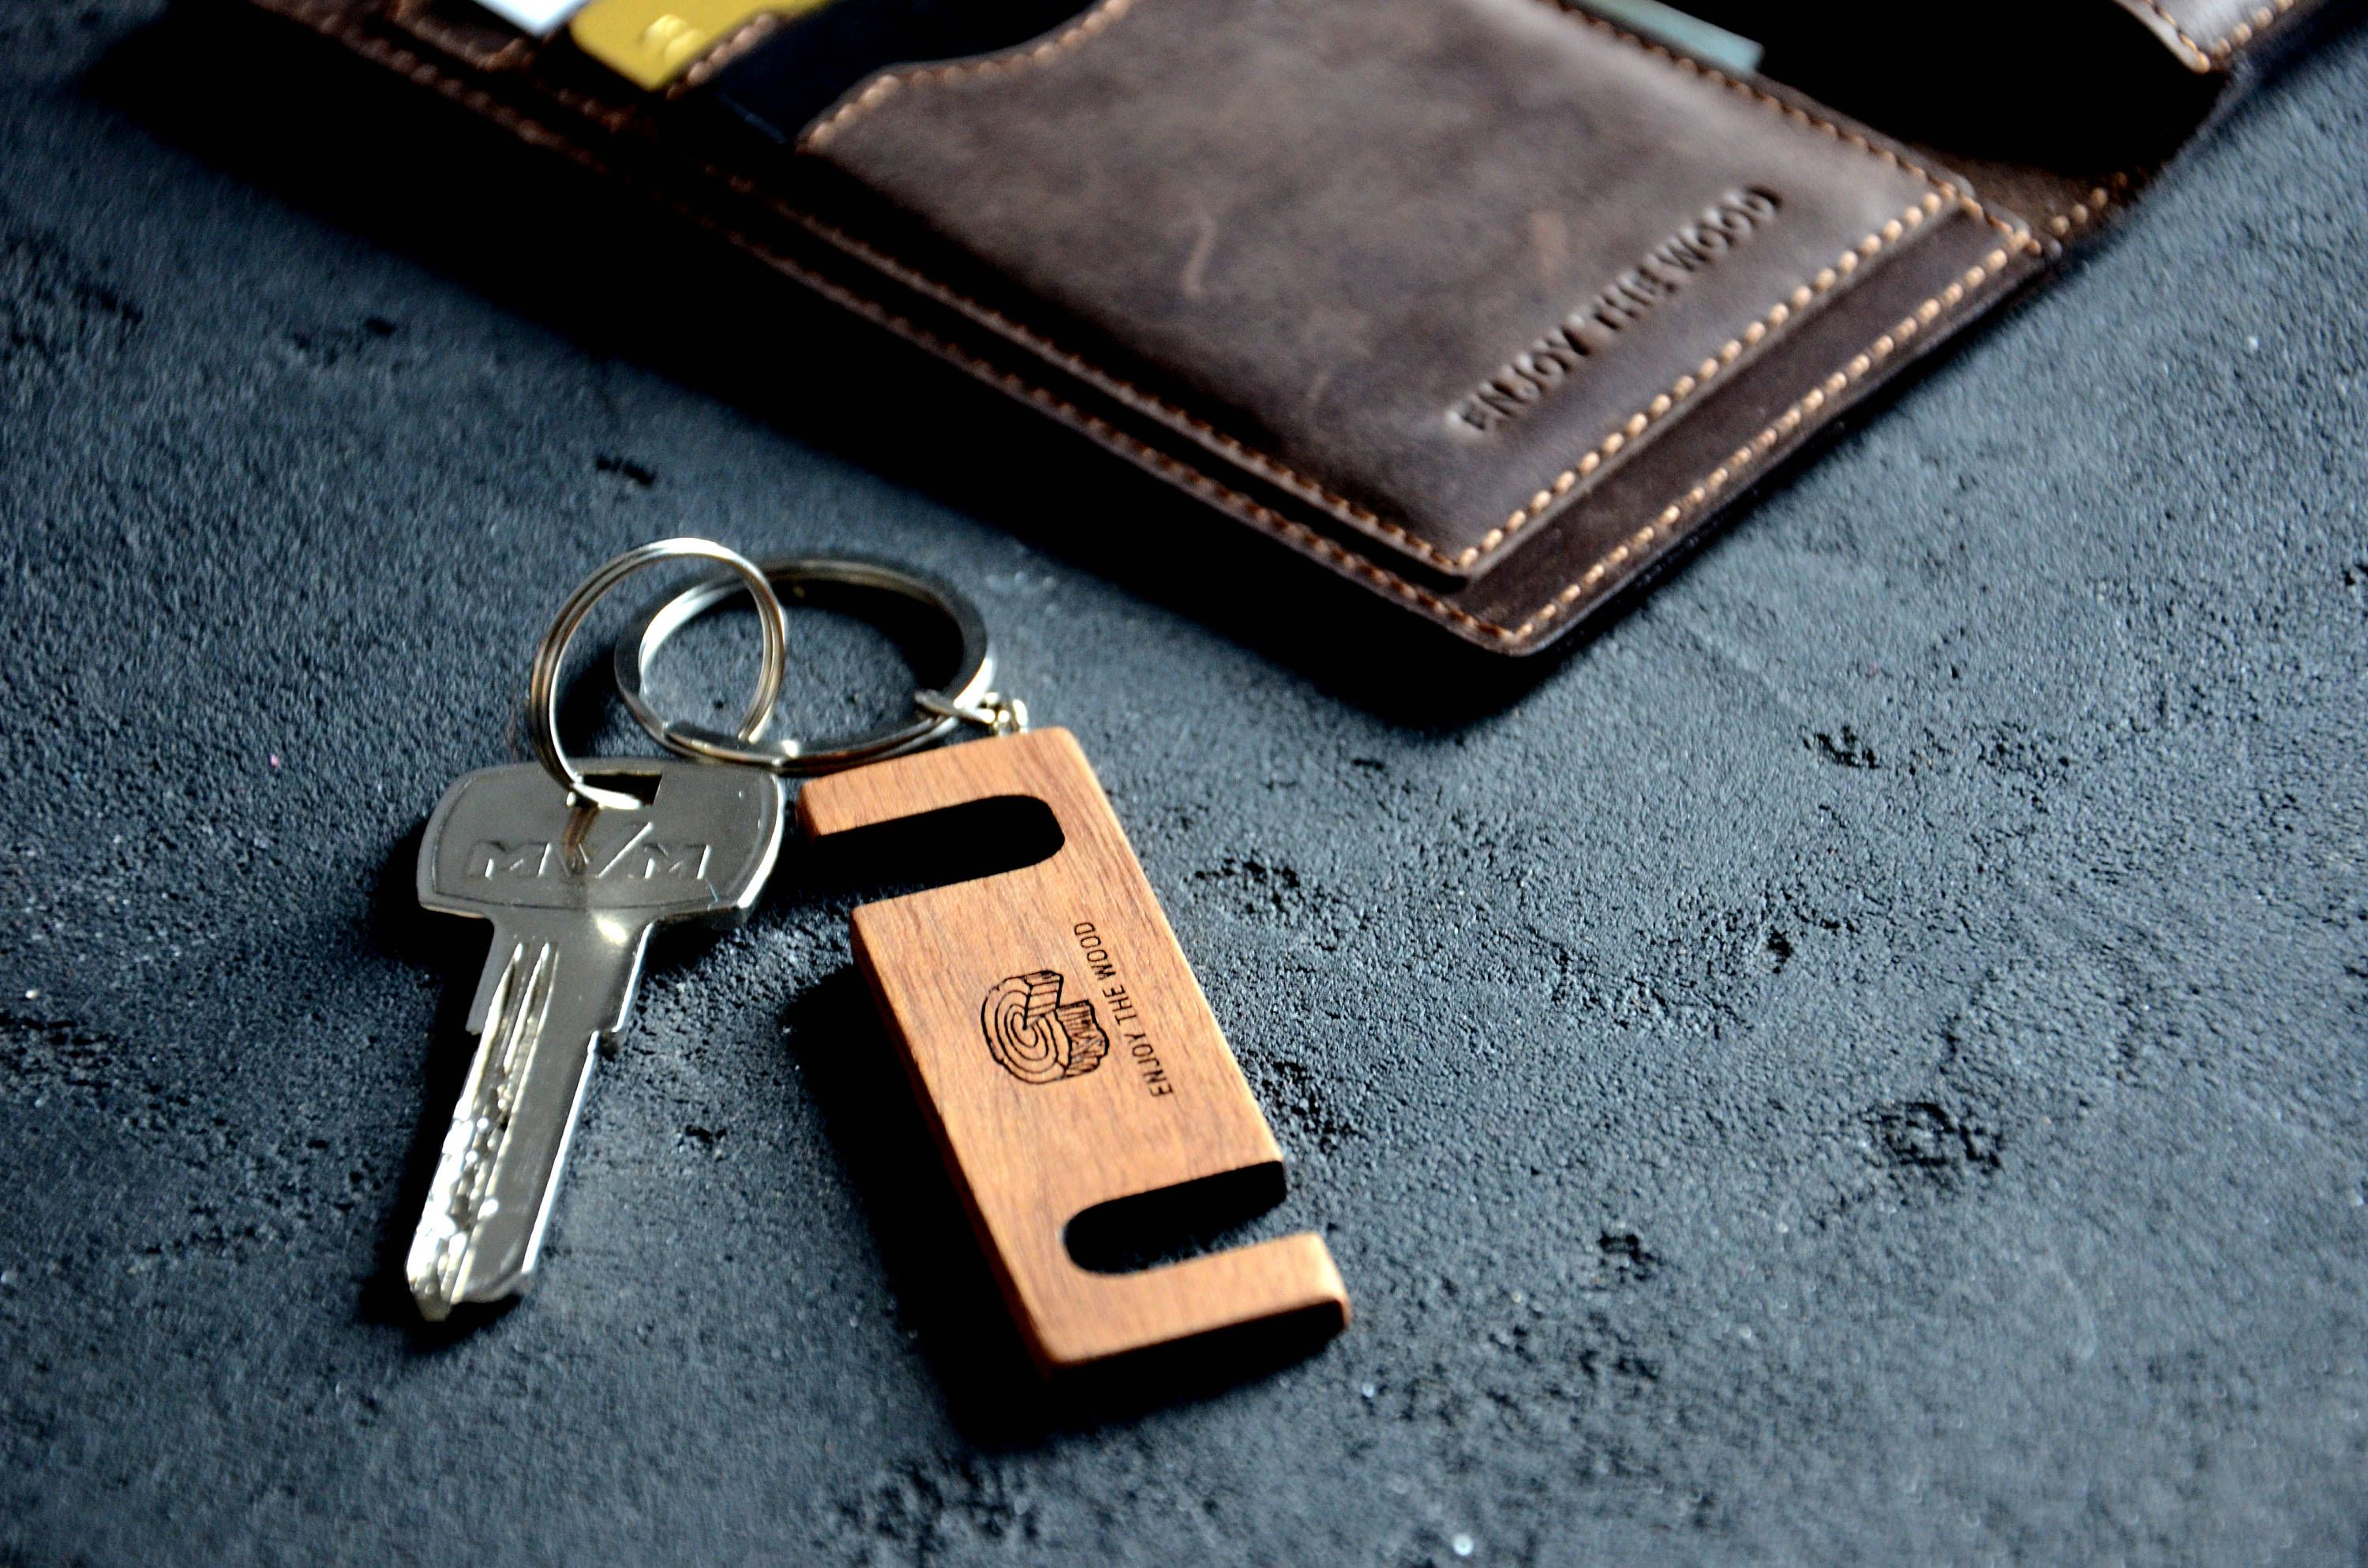 Custom phone stand key chain personalized iphone holder